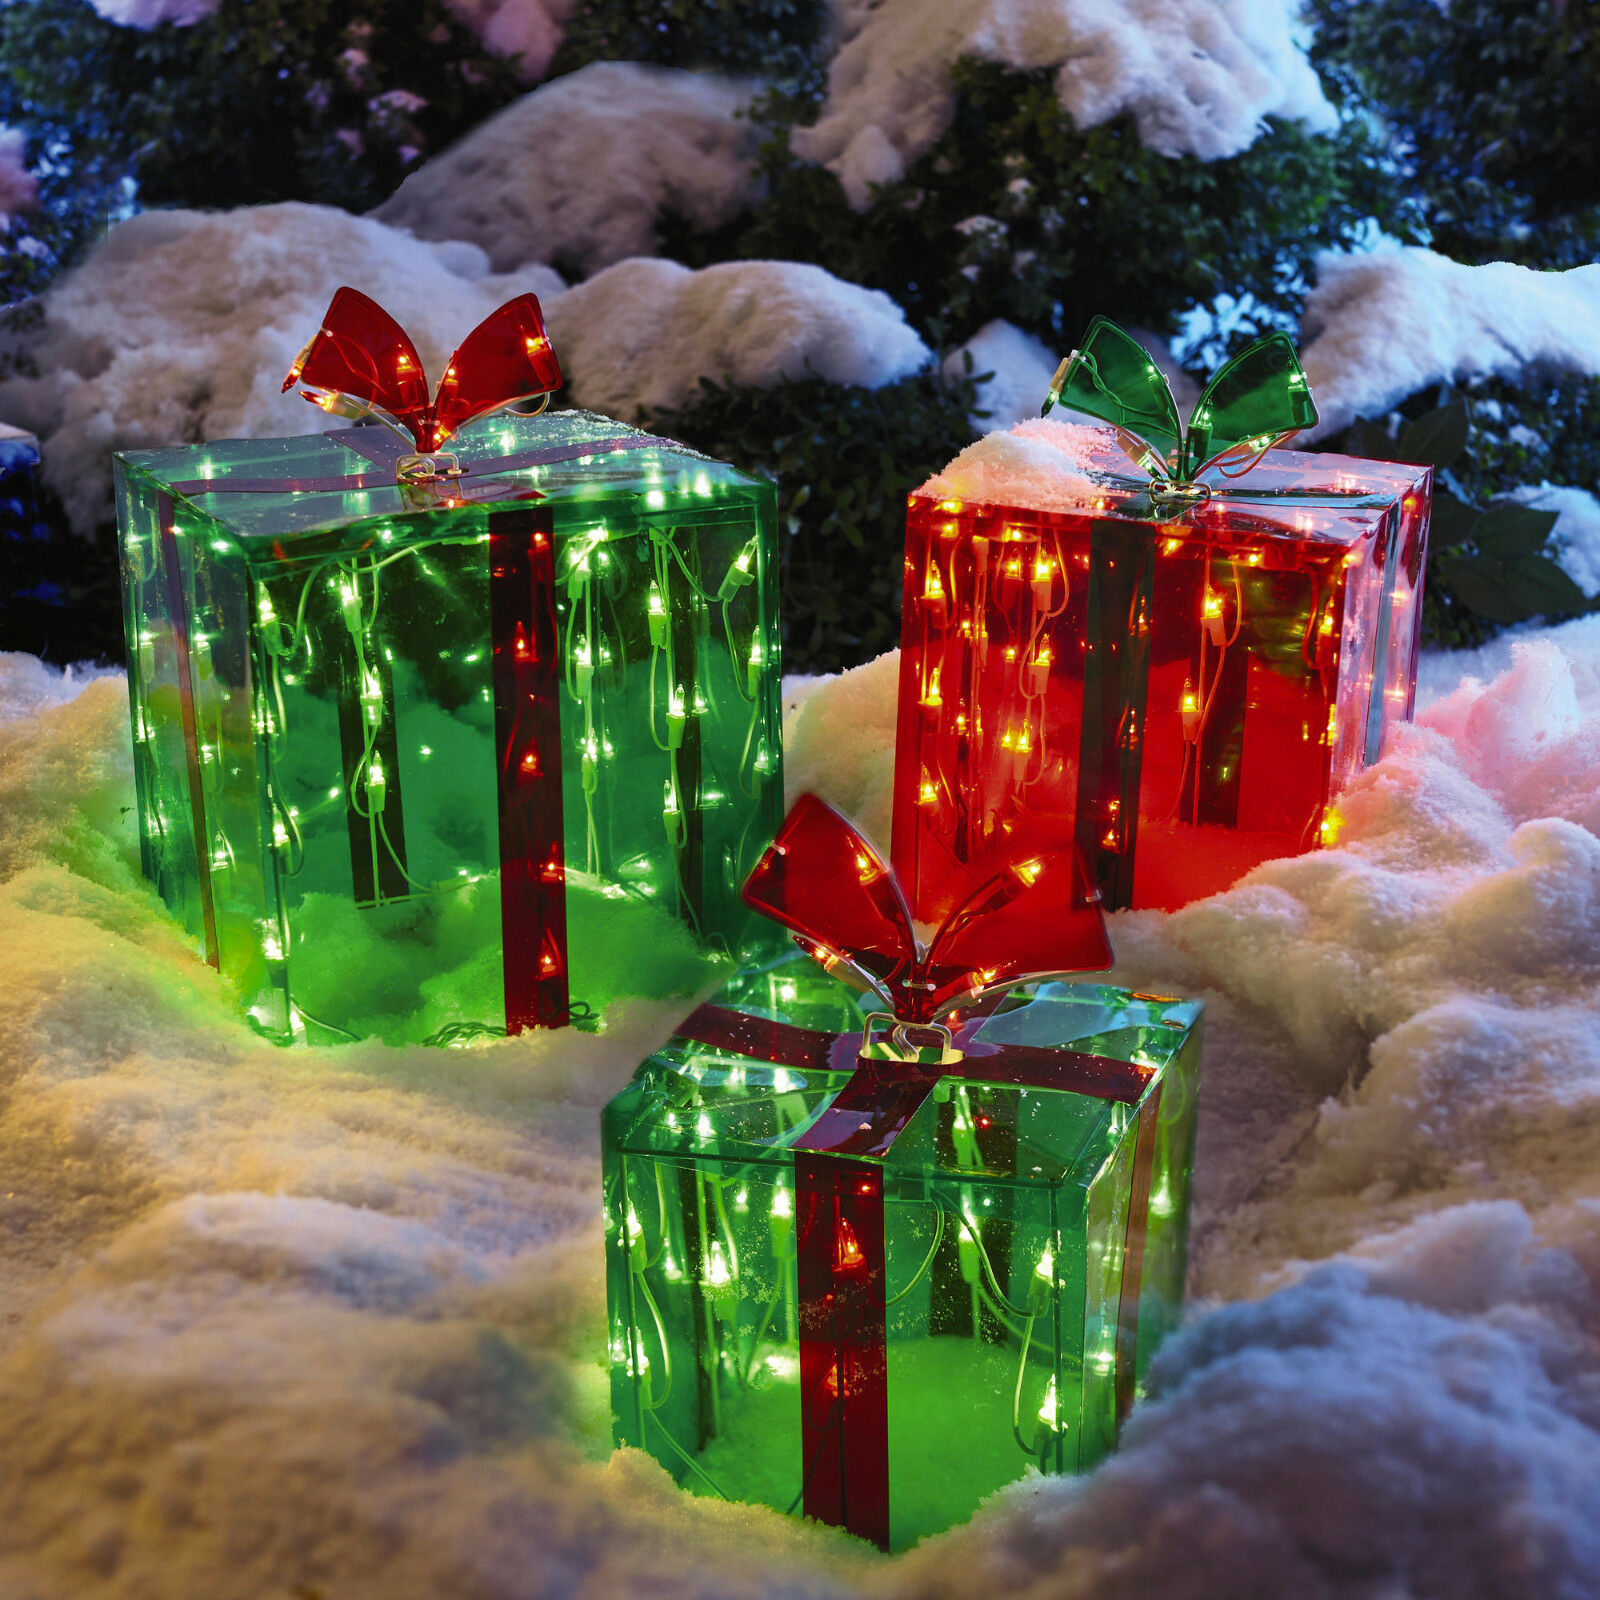 3 lighted gift boxes christmas decoration yard decor 150 lights indoor outdoor 1 of 3 see more - Lighted Gift Boxes Christmas Decorations